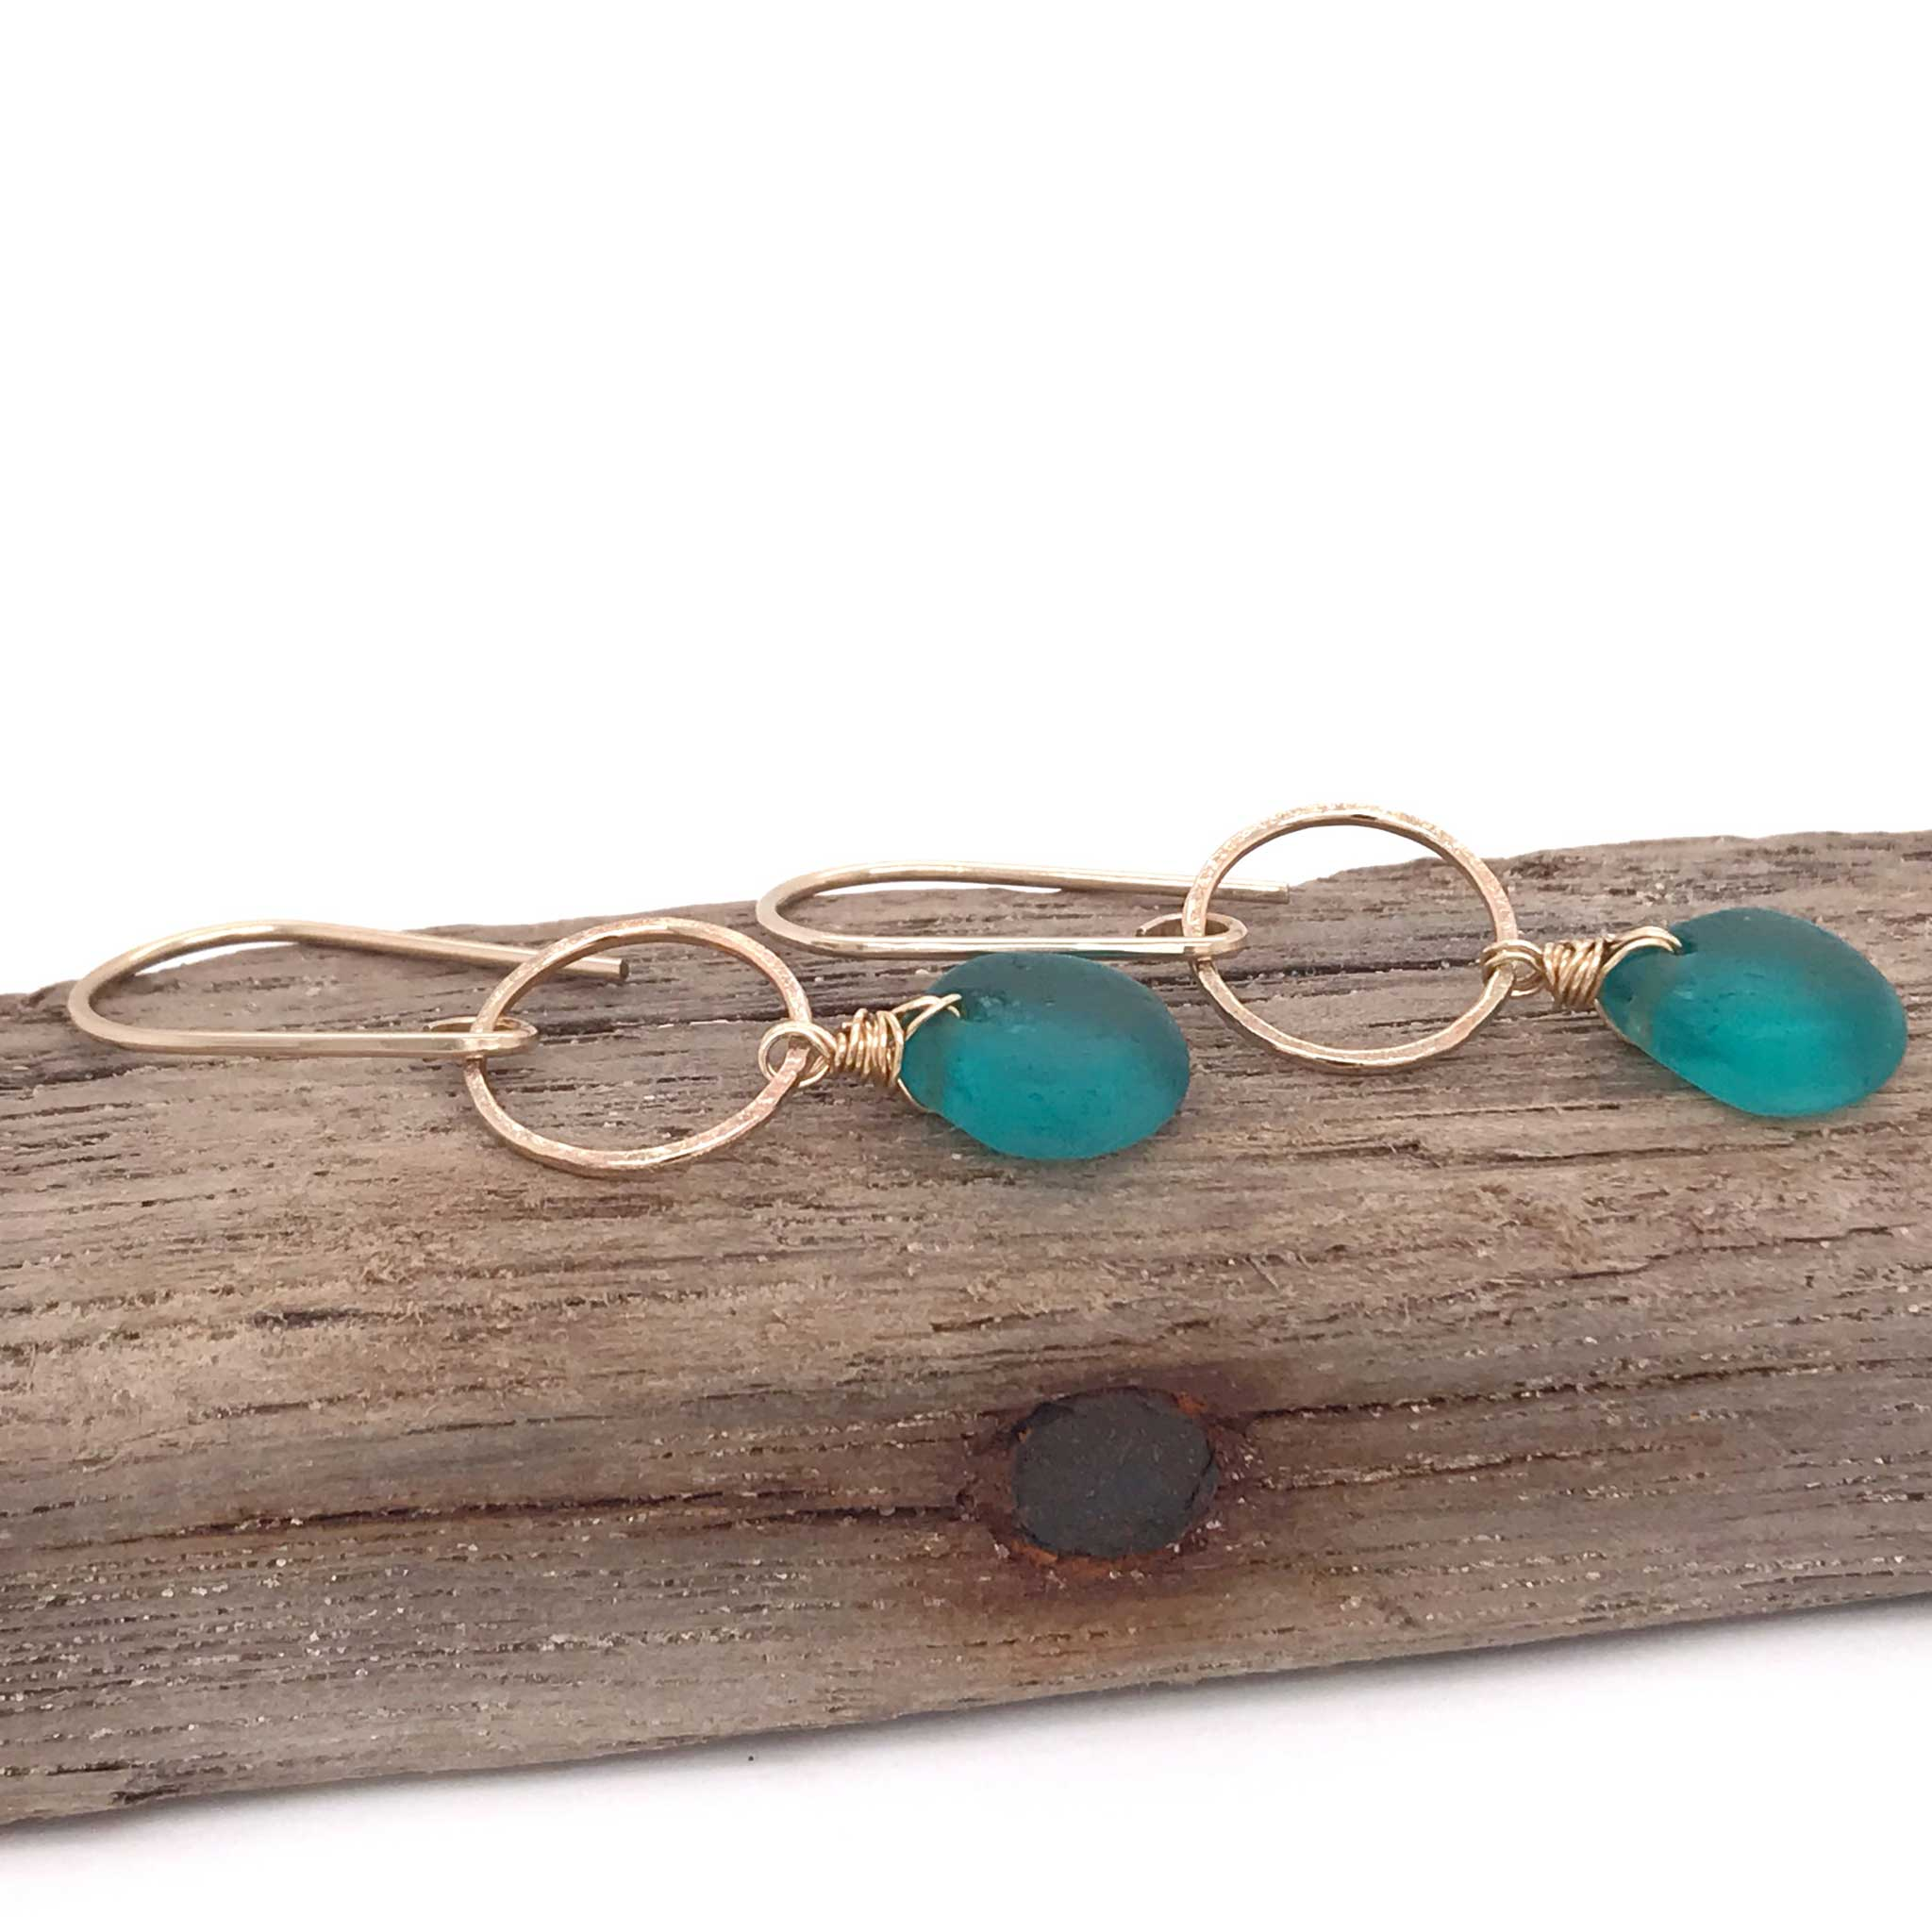 teal earrings seaglass on gold circles kriket broadhurst jewellery